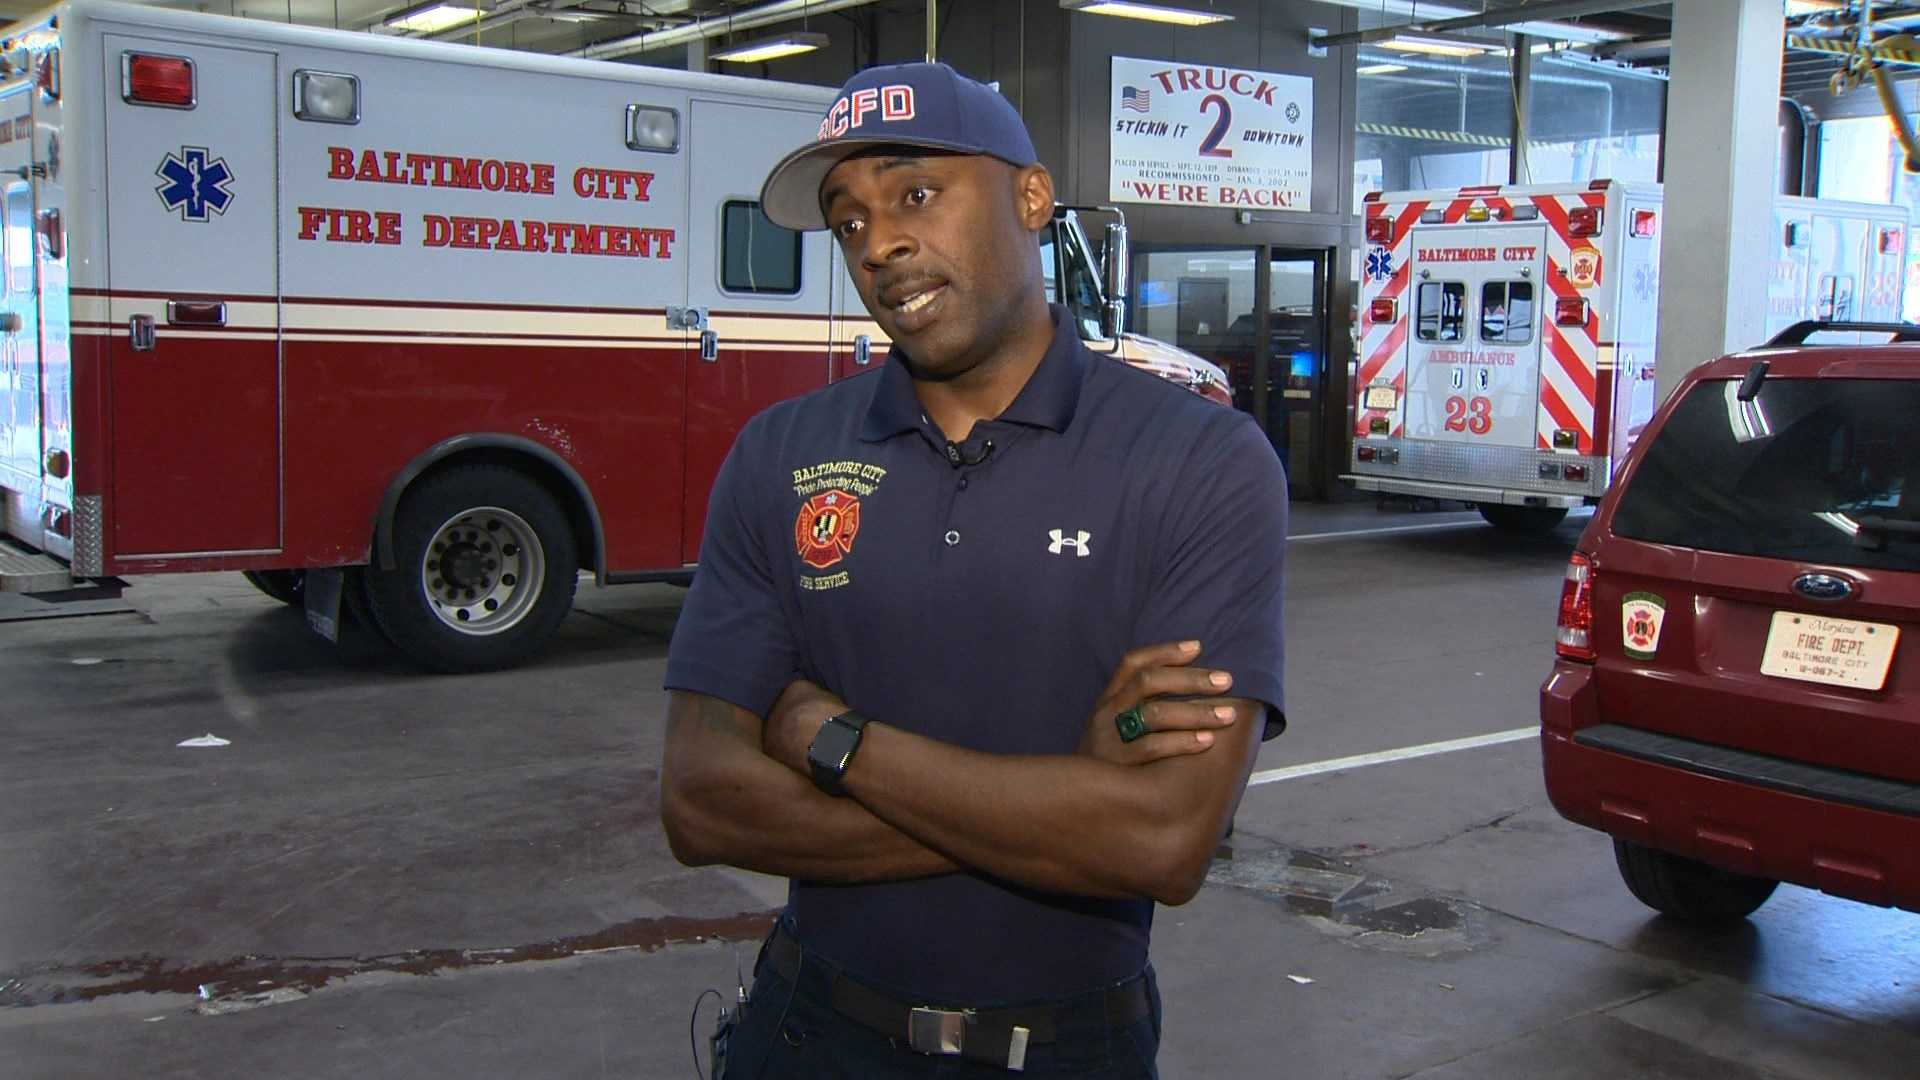 Baltimore firefighter Nick Green will appear on the June 27 episode of American Ninja Warrior.